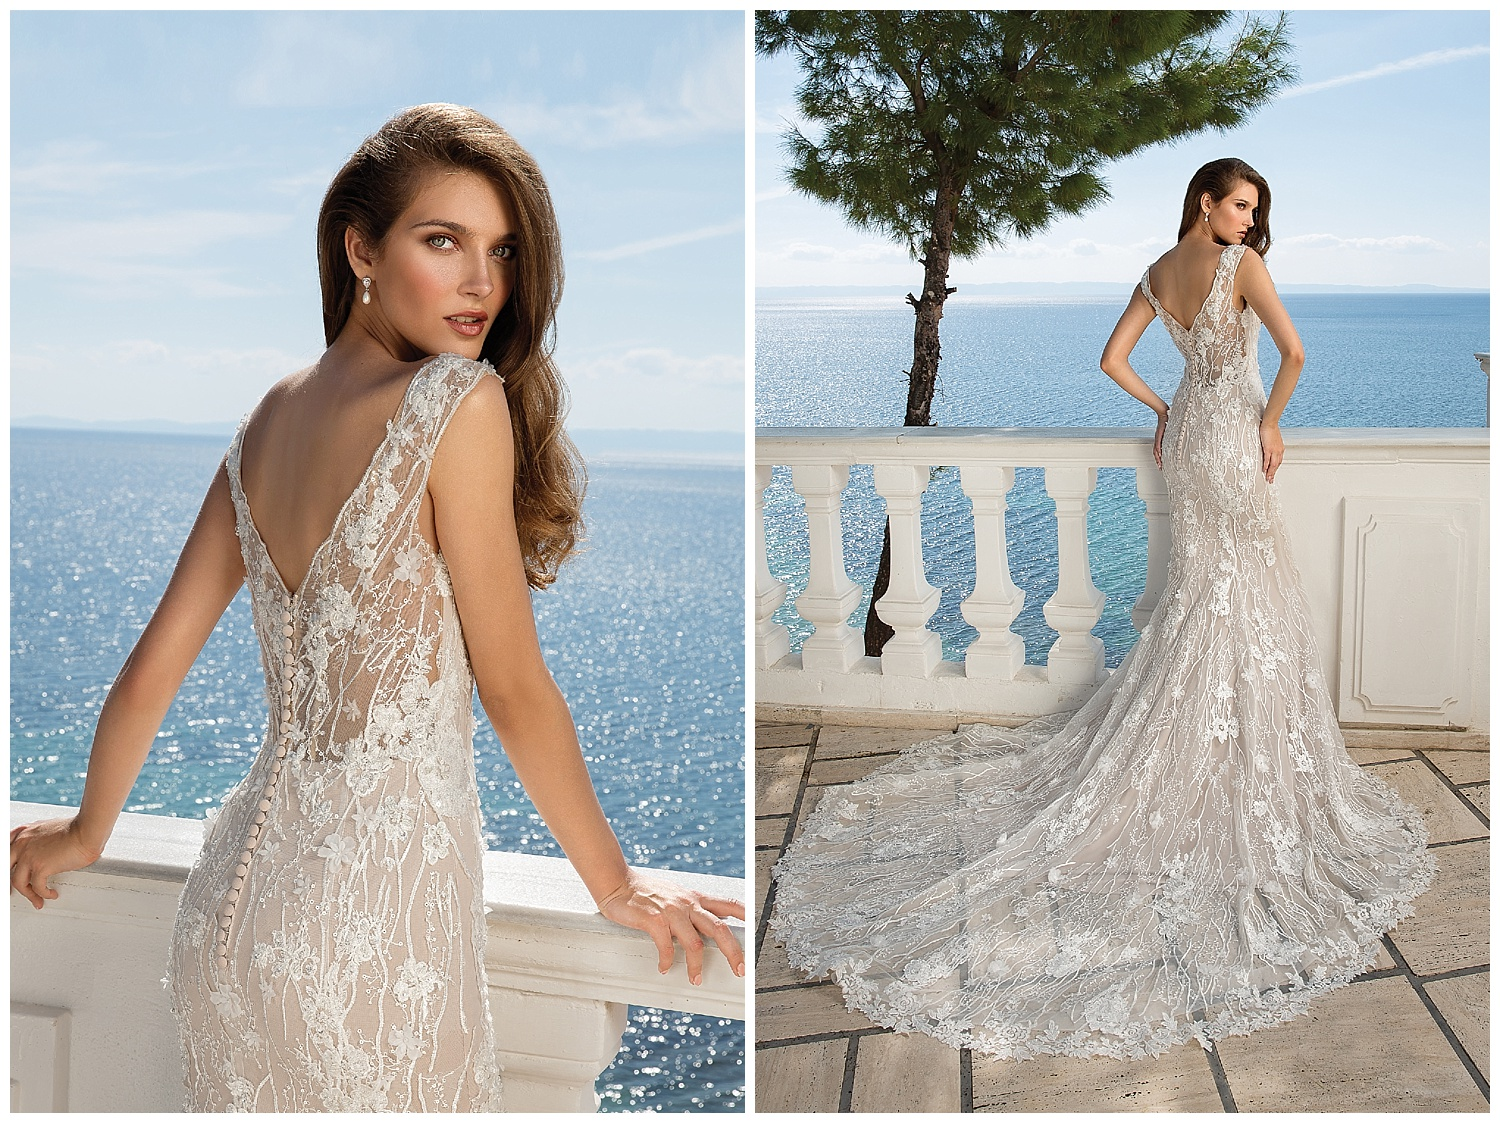 justin-alexander-88081-fitted-lace-wedding-dress-epiphany-boutique-carmel-california.jpg